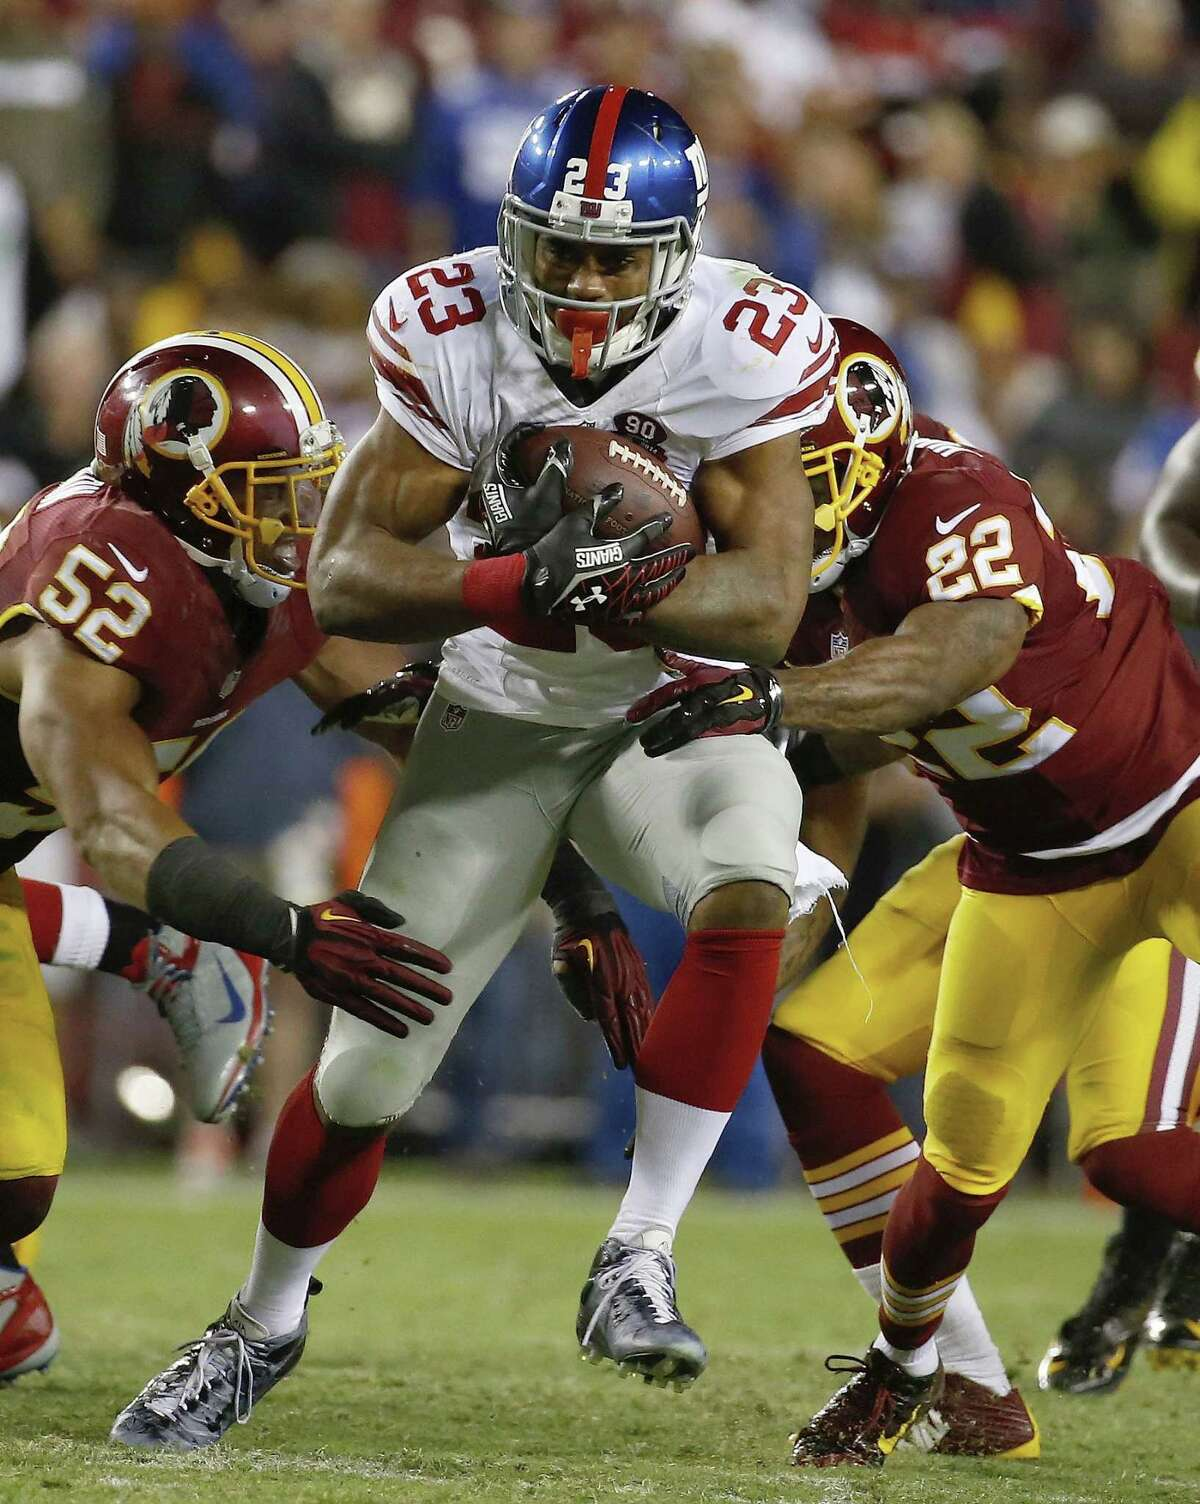 New York Giants running back Rashad Jennings is expected to play against the San Francisco 49ers.